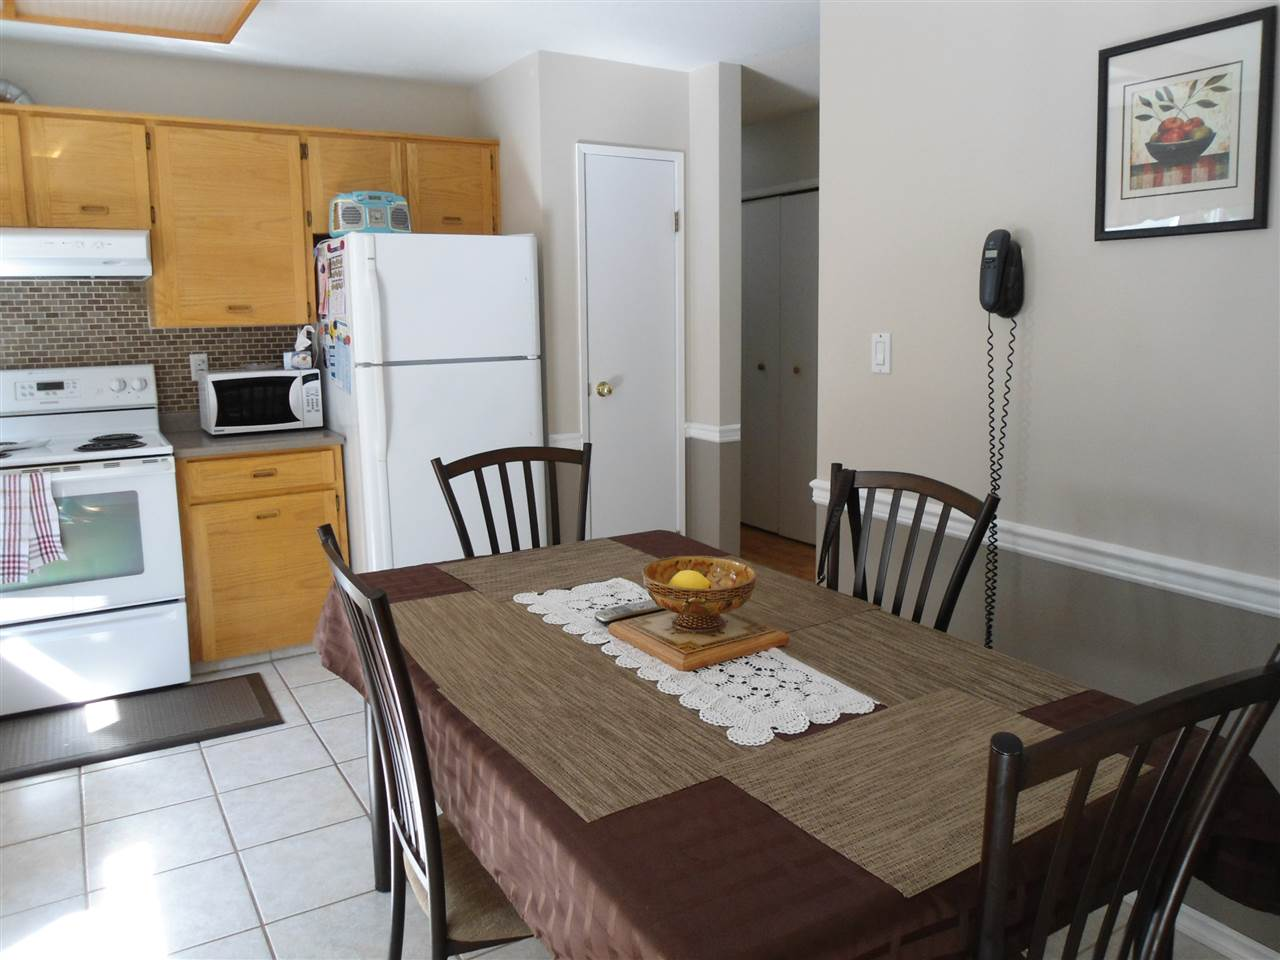 Photo 2: 6243 BERGER Crescent in Prince George: Hart Highlands House for sale (PG City North (Zone 73))  : MLS(r) # R2097859